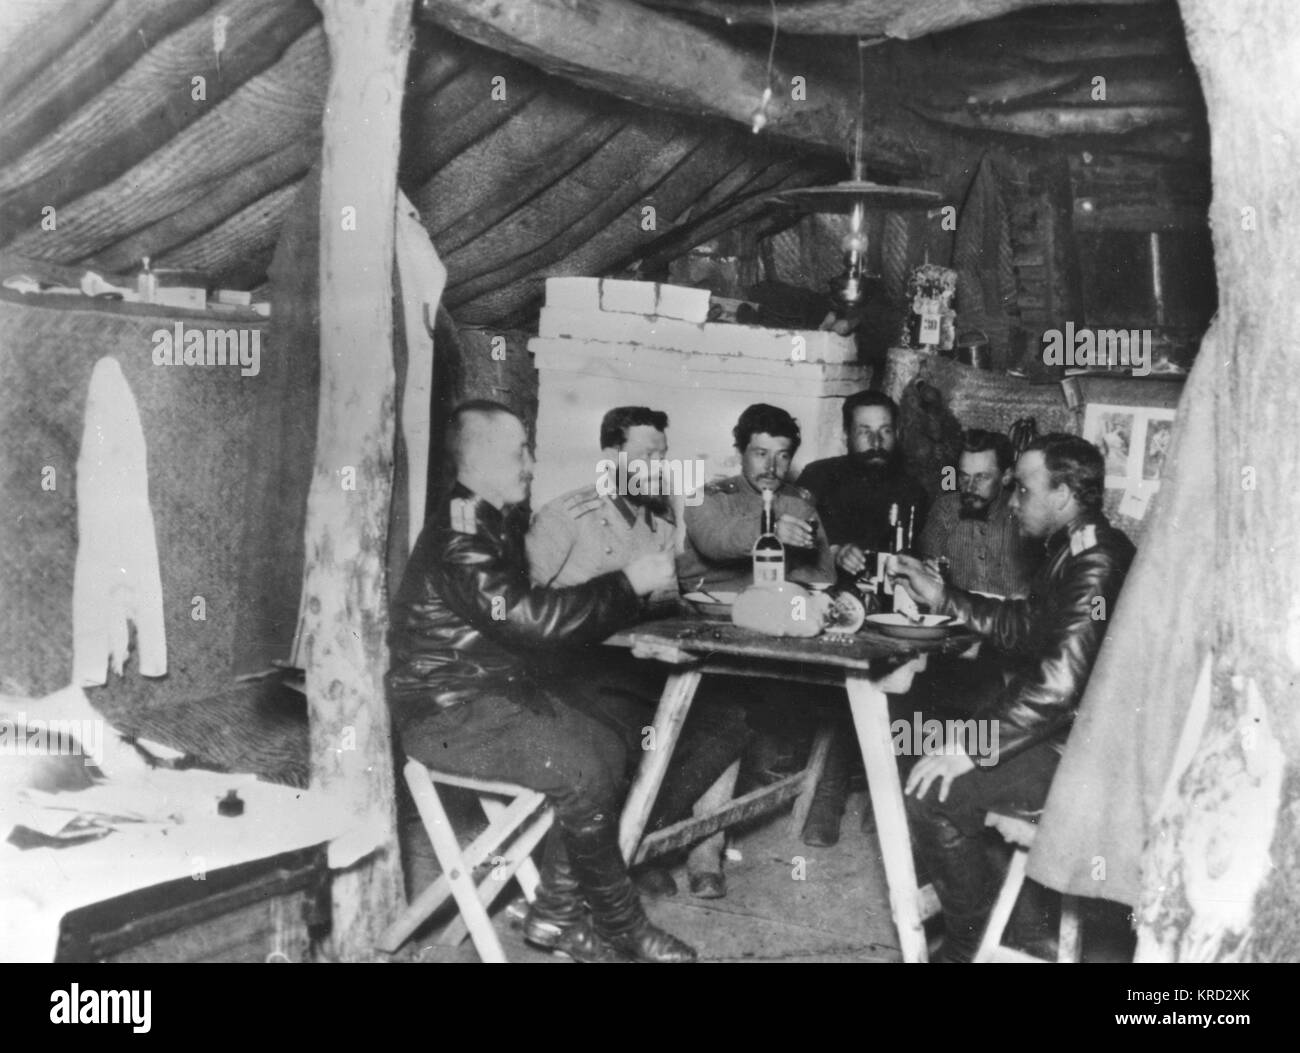 A group of six Russian officers relax in their dugout during the second and final year of the Russo-Japanese War. Stock Photo